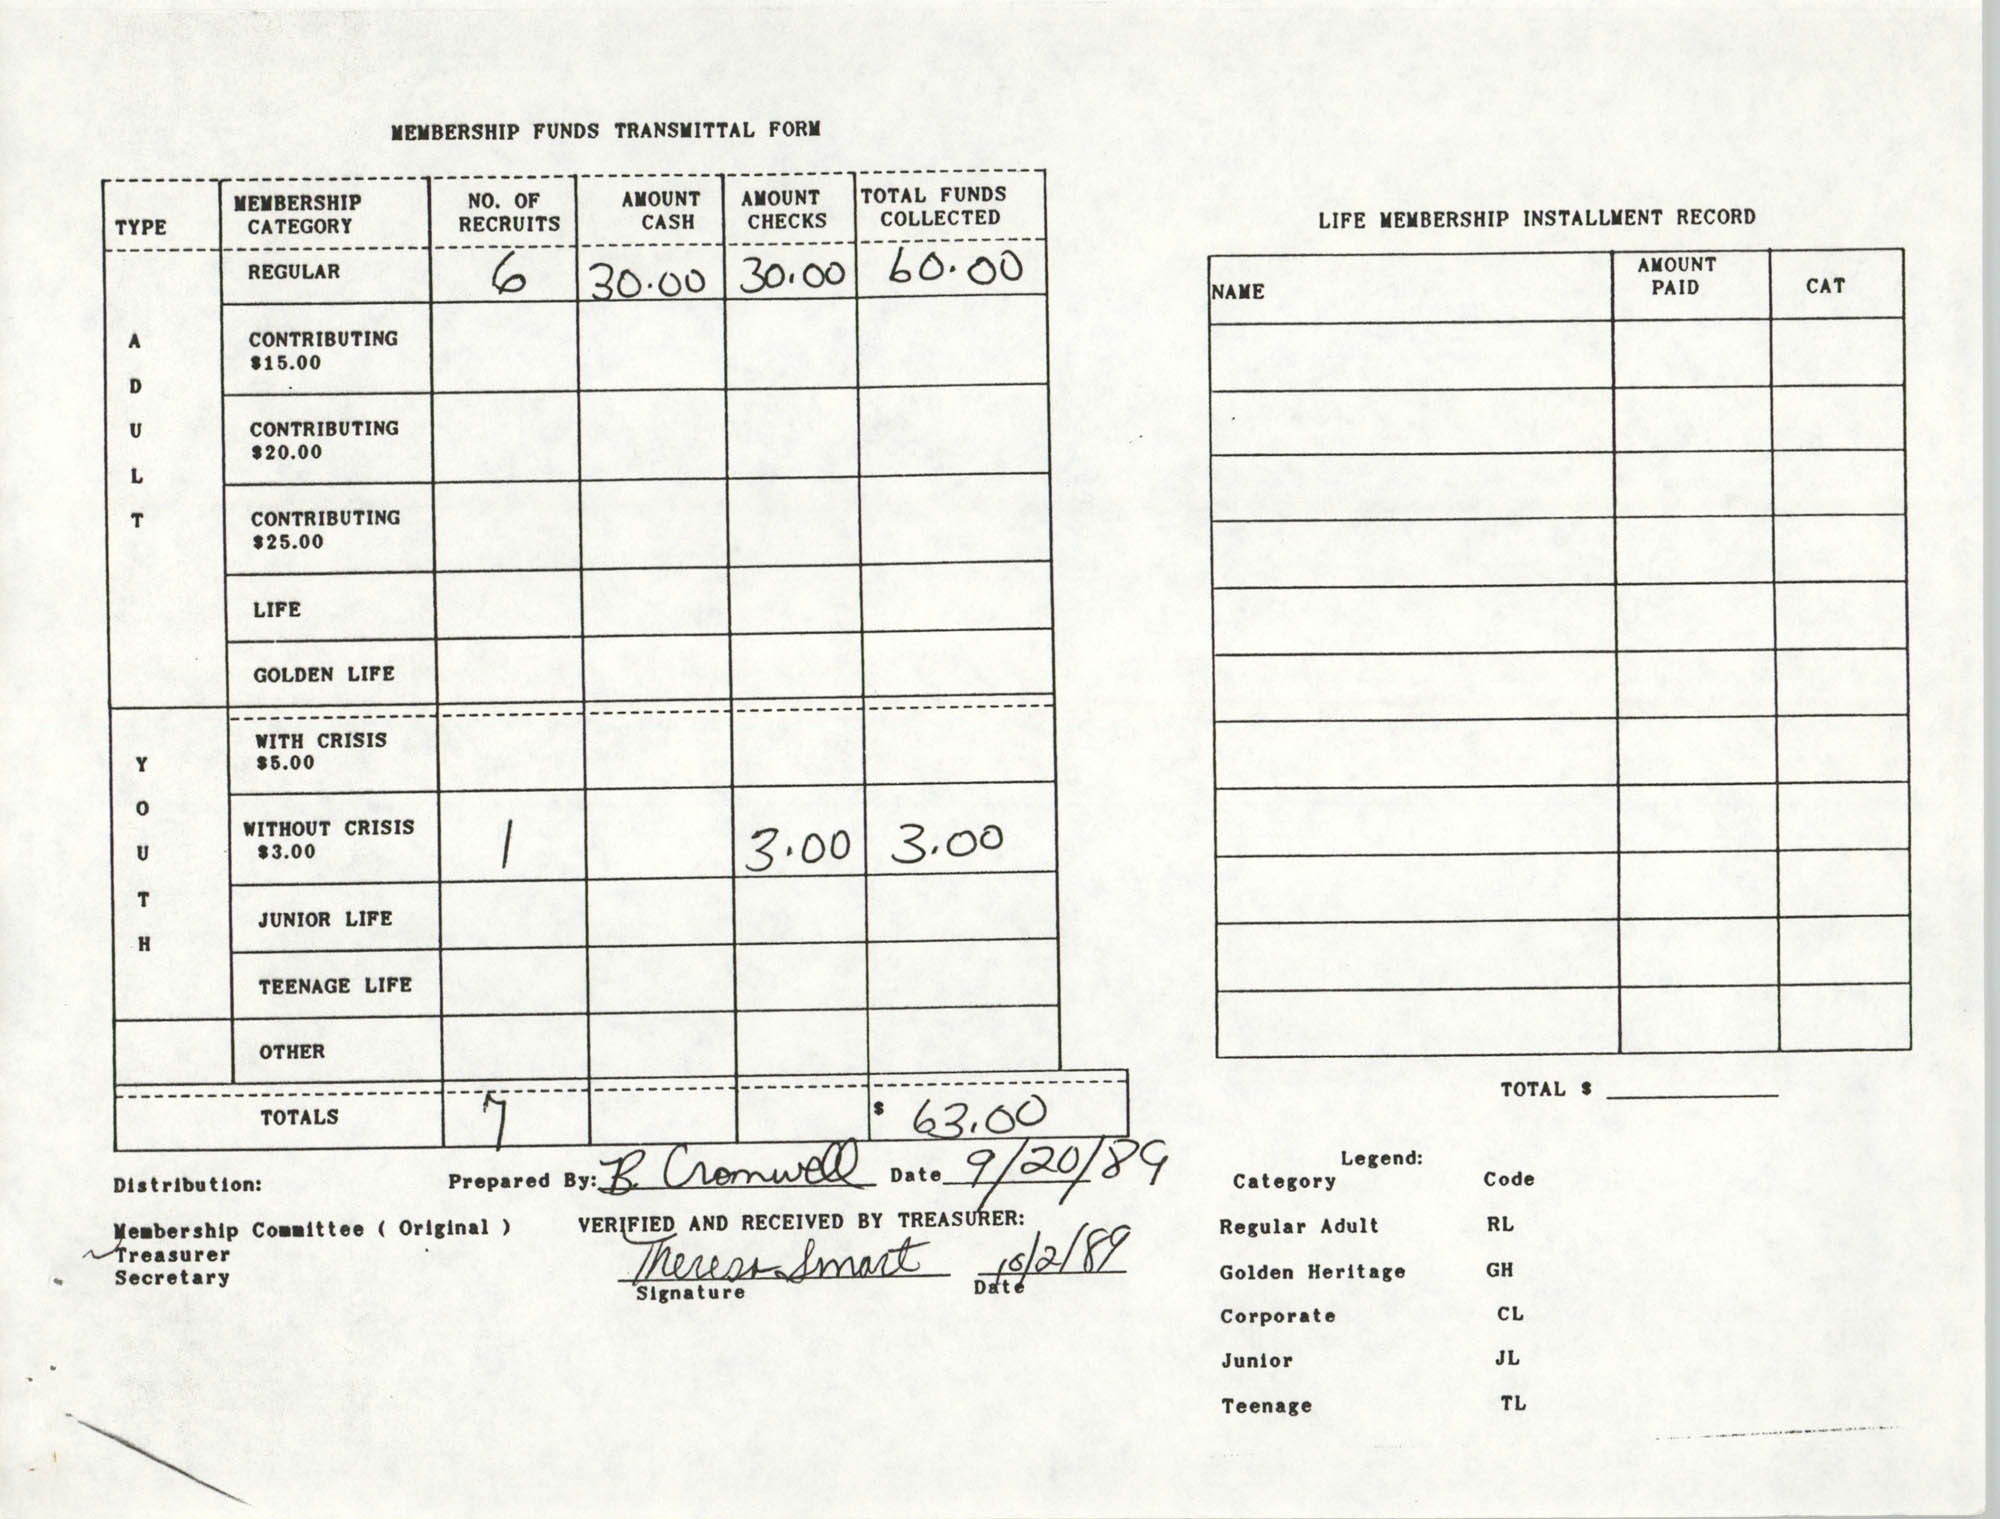 Charleston Branch of the NAACP Funds Transmittal Forms, September 1989, Page 7